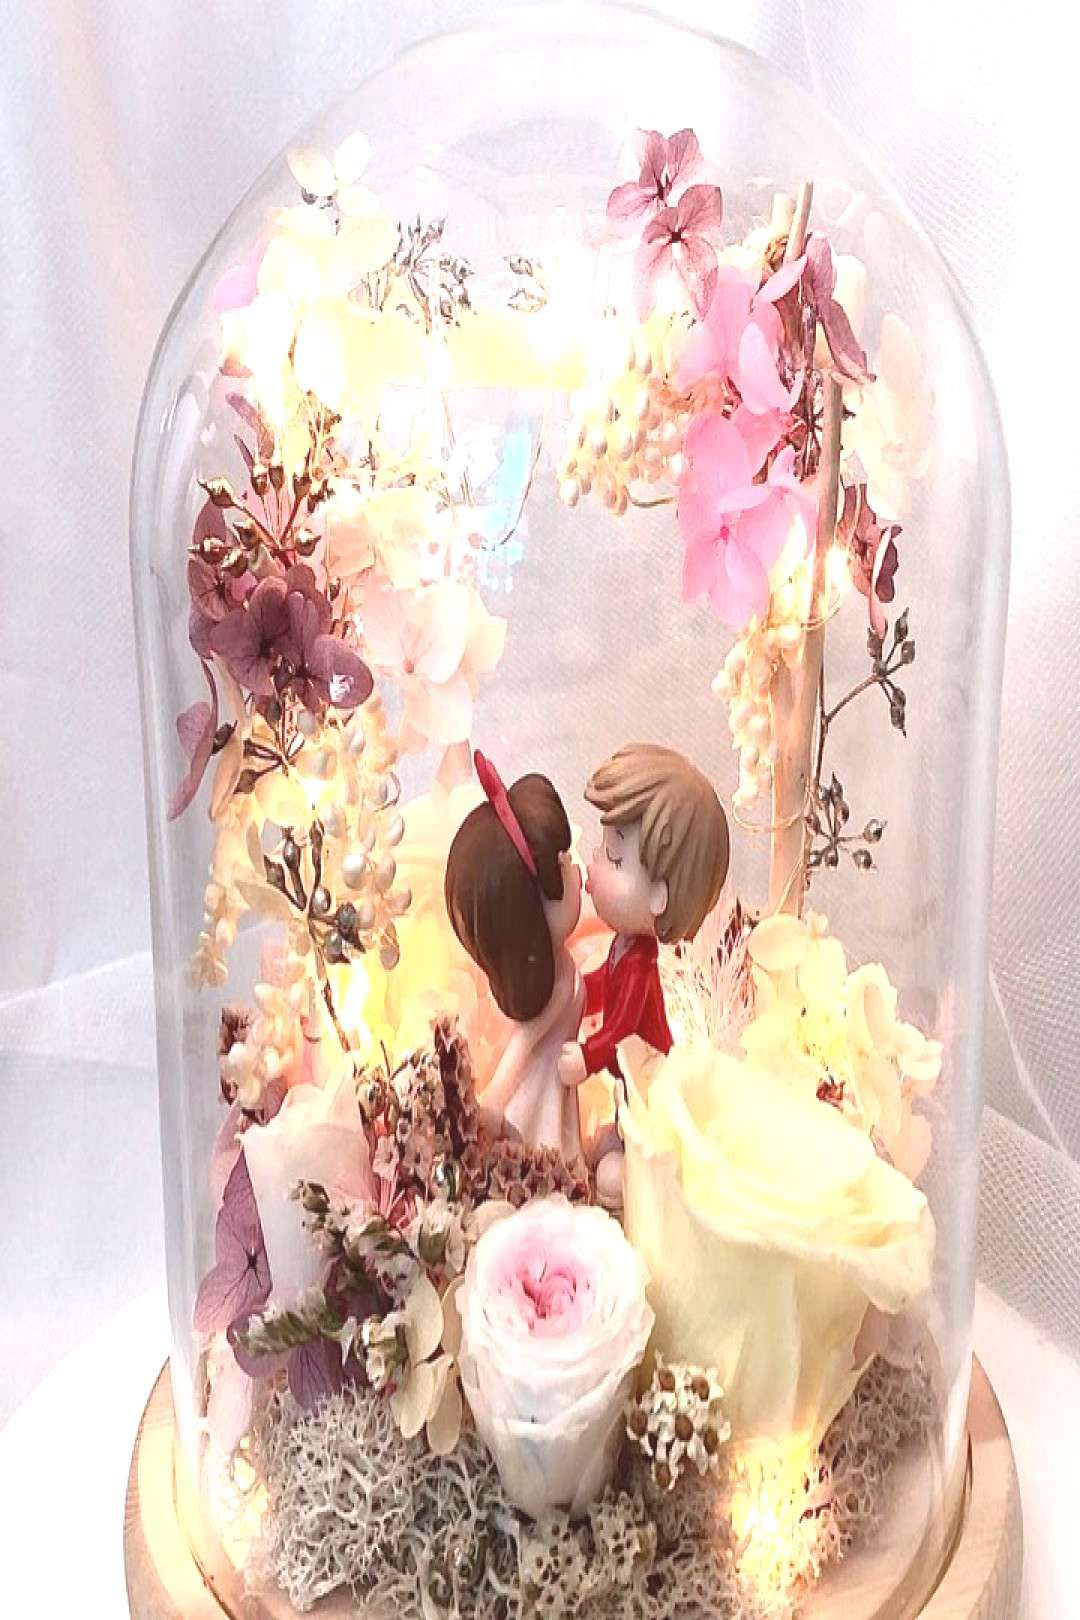 #everlasting #wedding #flower #theme #glass #since #dome #am #at #i 心血来潮!Wedding Theme Everlasting Glass Dome since I am atYou can find Wedding bouquets and more on our website.心血来潮!Wedding Theme Everlasting Glass Dome since I am at